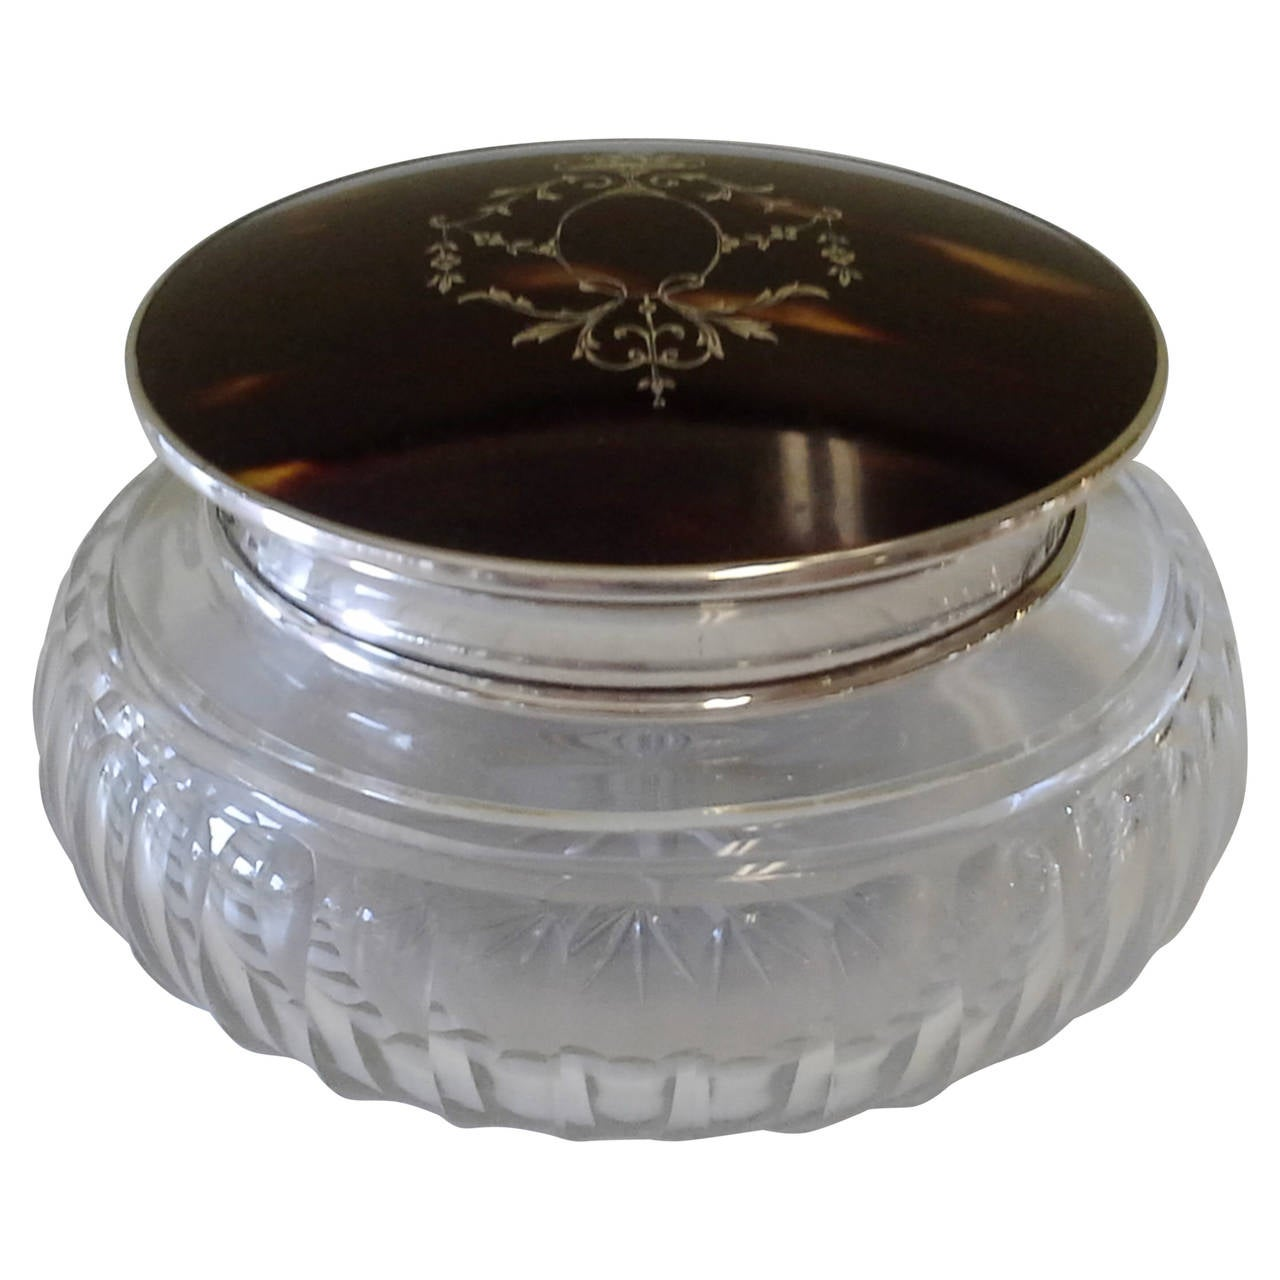 English Tortoiseshell & Sterling Silver Powder Jar with Inlaid Top